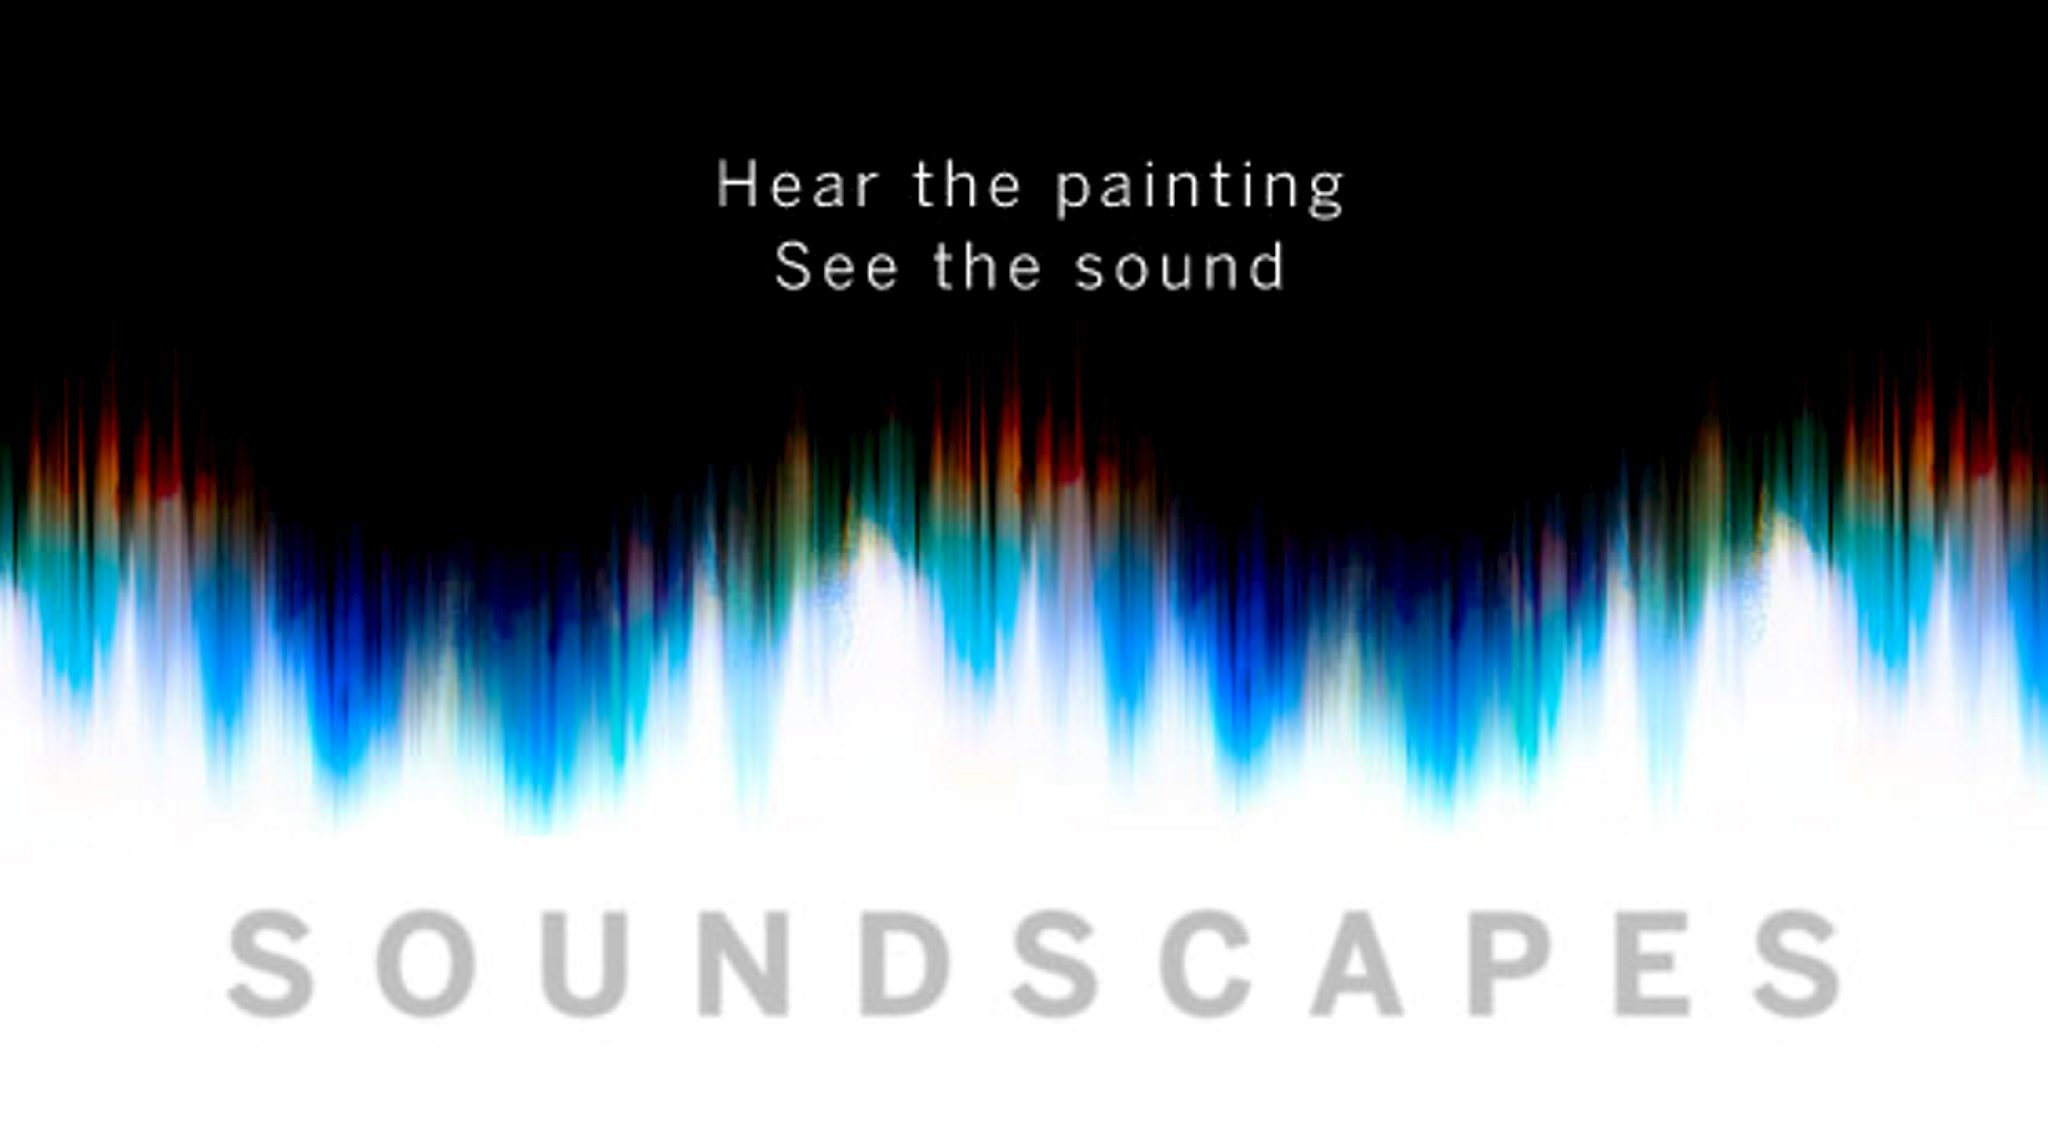 Soundscapes: Listening to Paintings